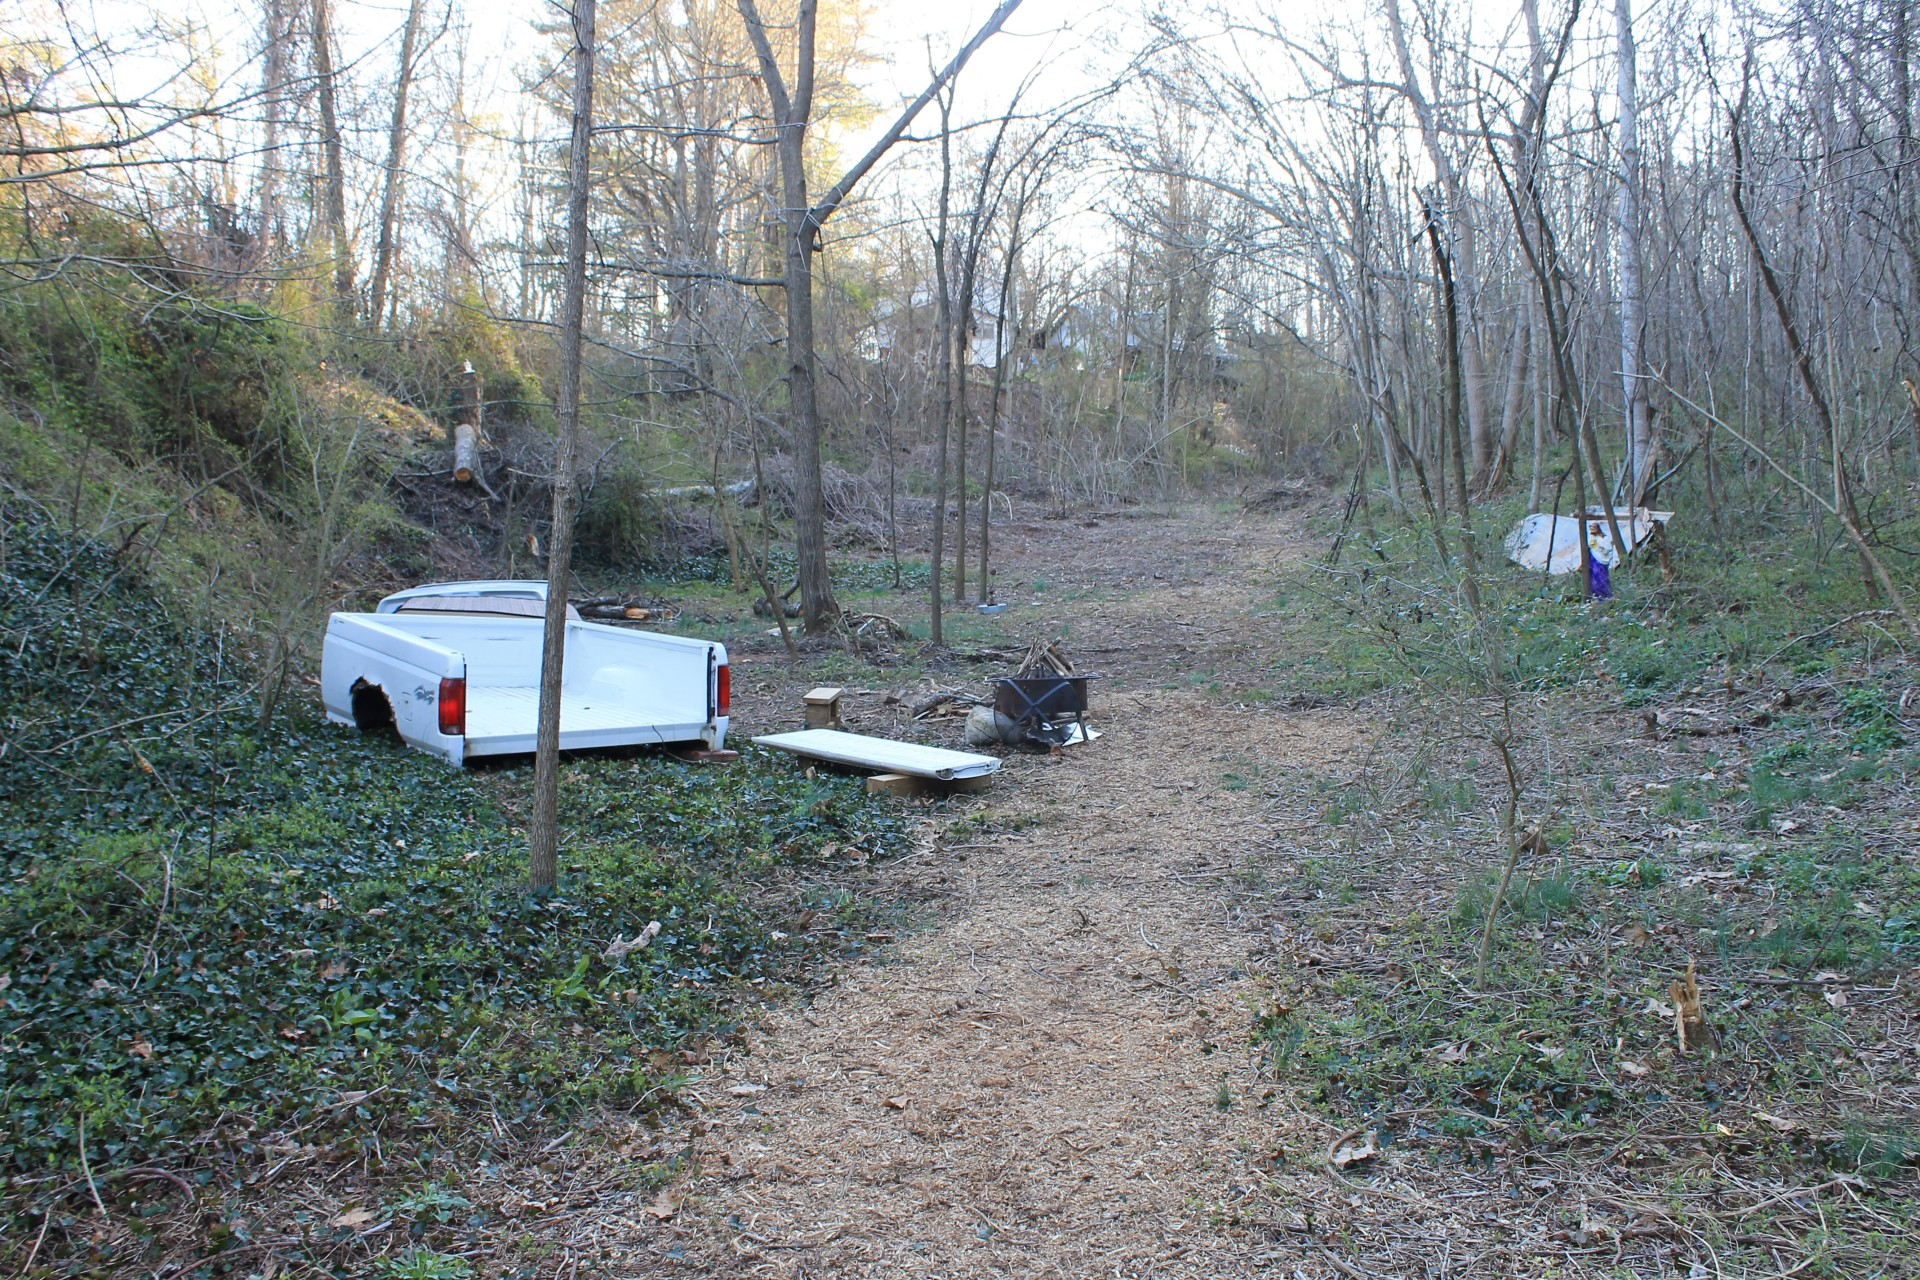 Early Stage: Campground